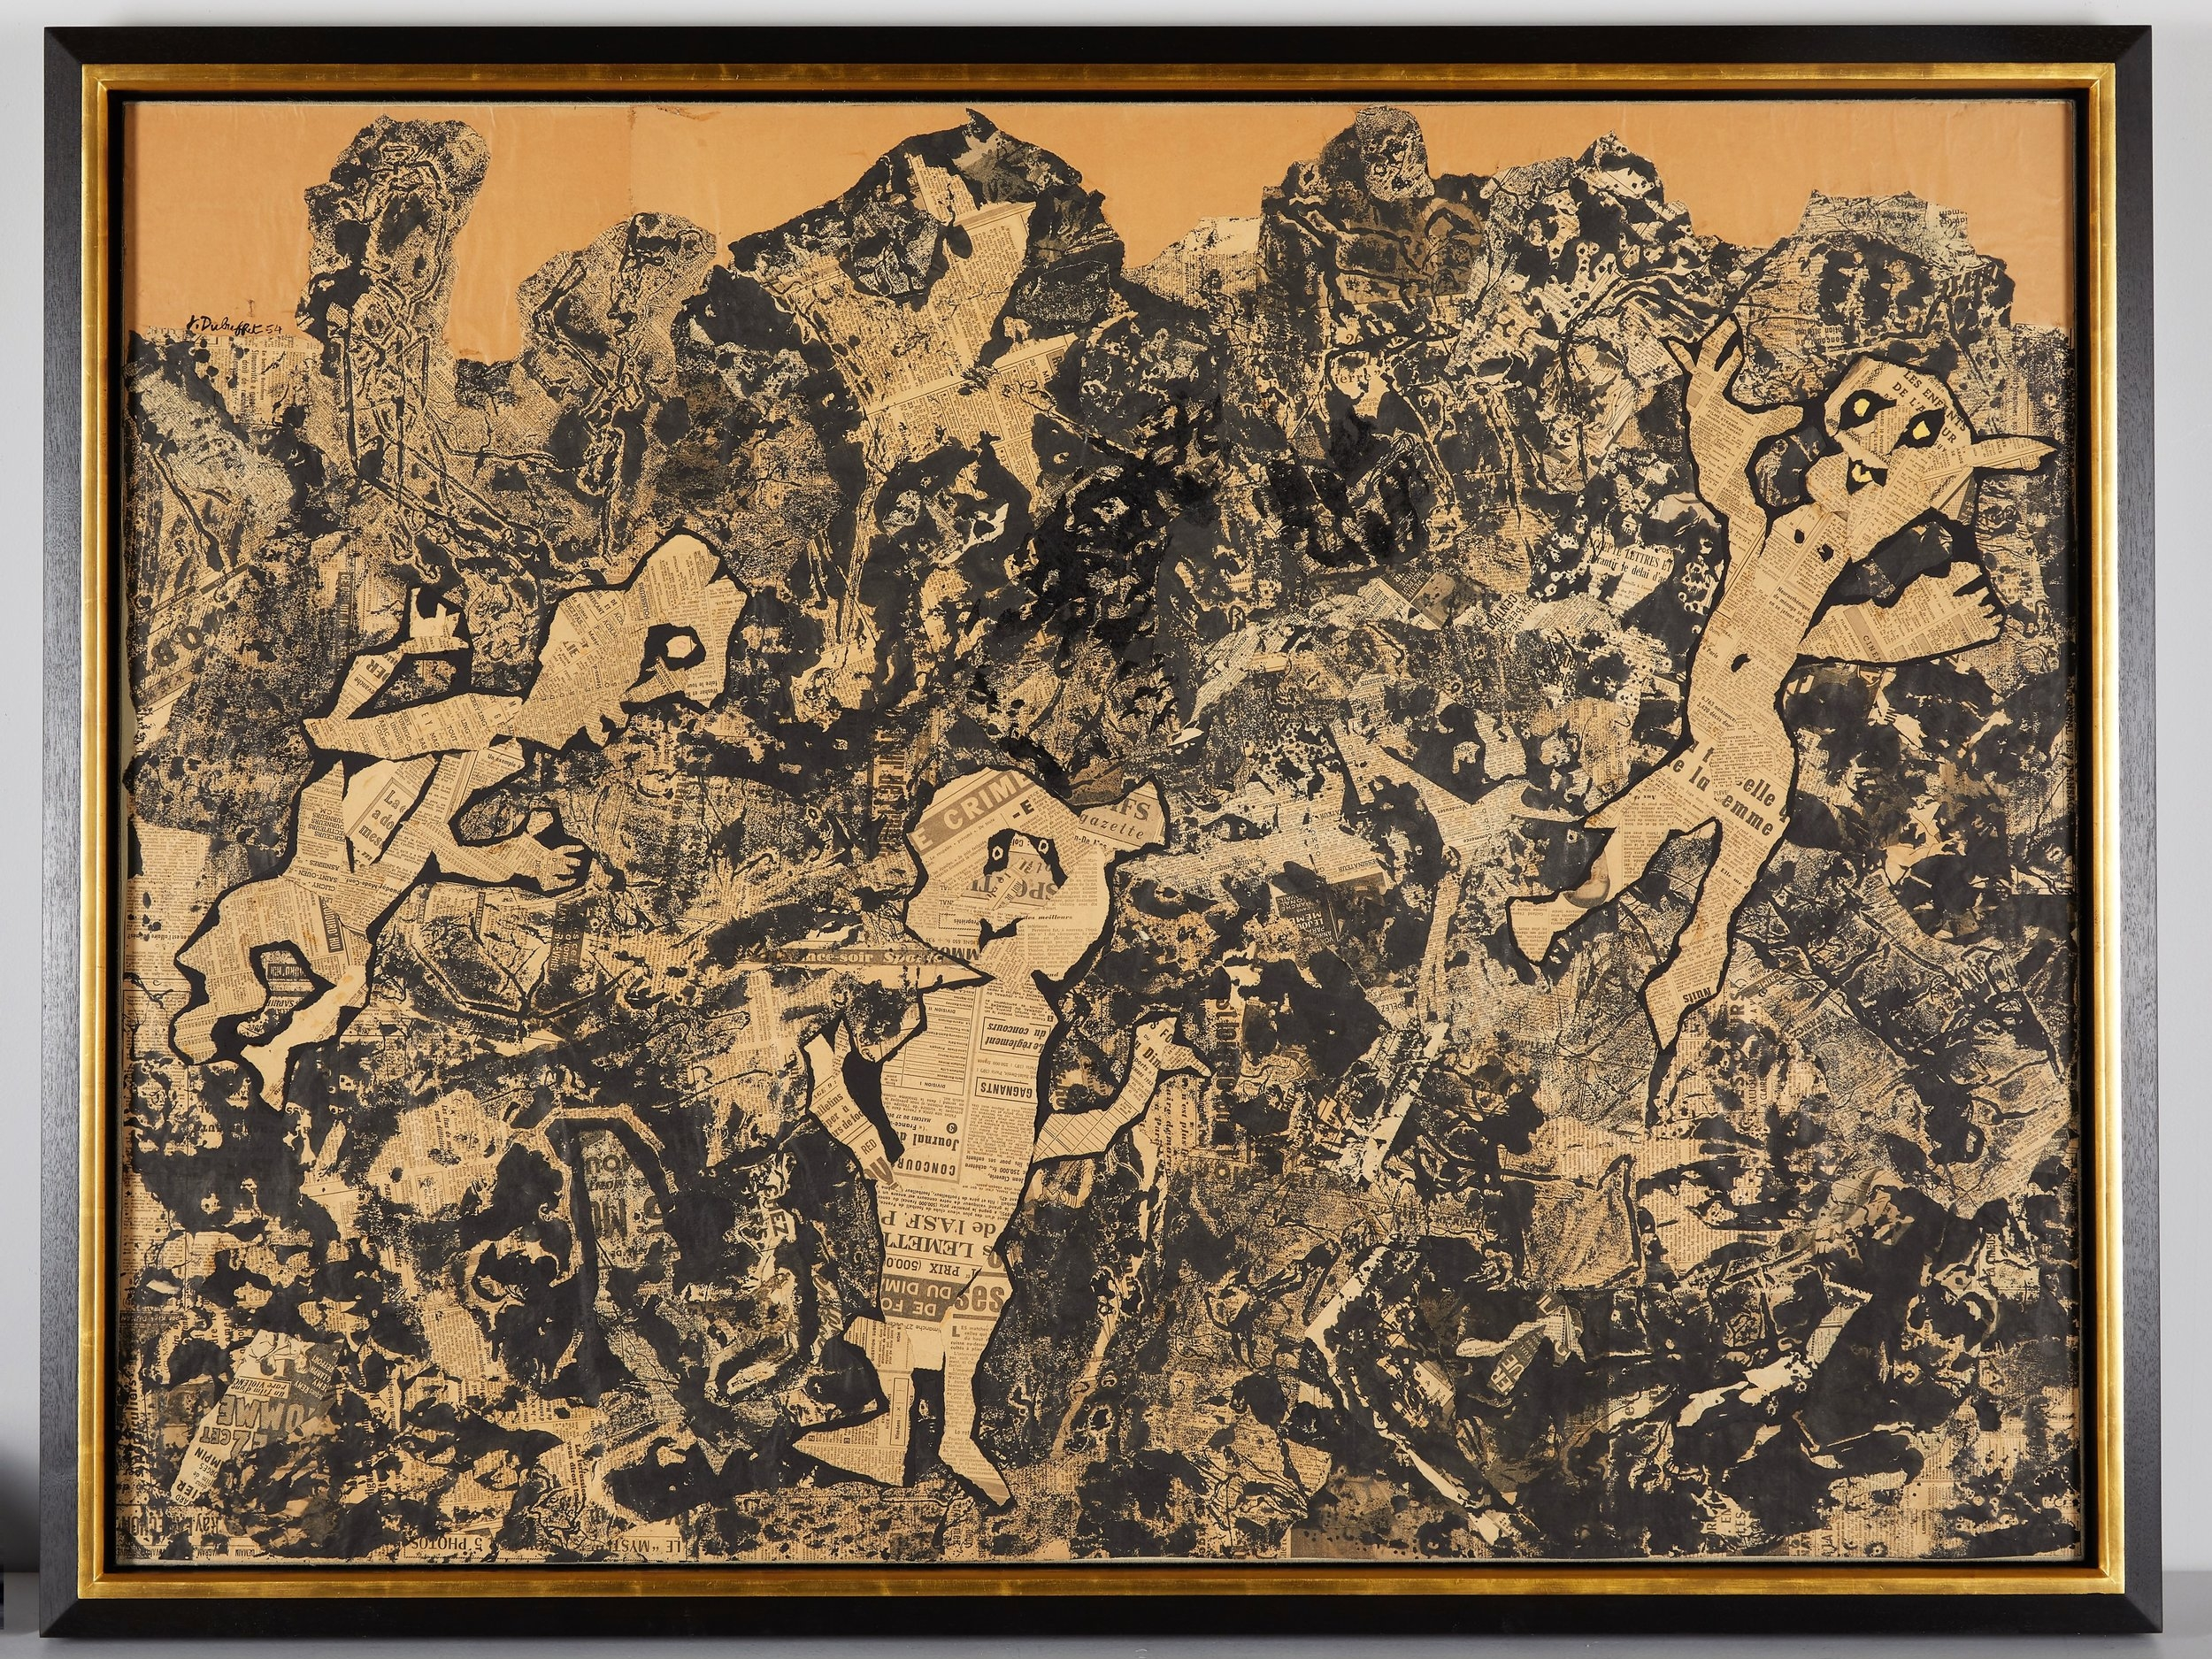 A Jean Dubuffet in a custom-made, conservation-grade frame.